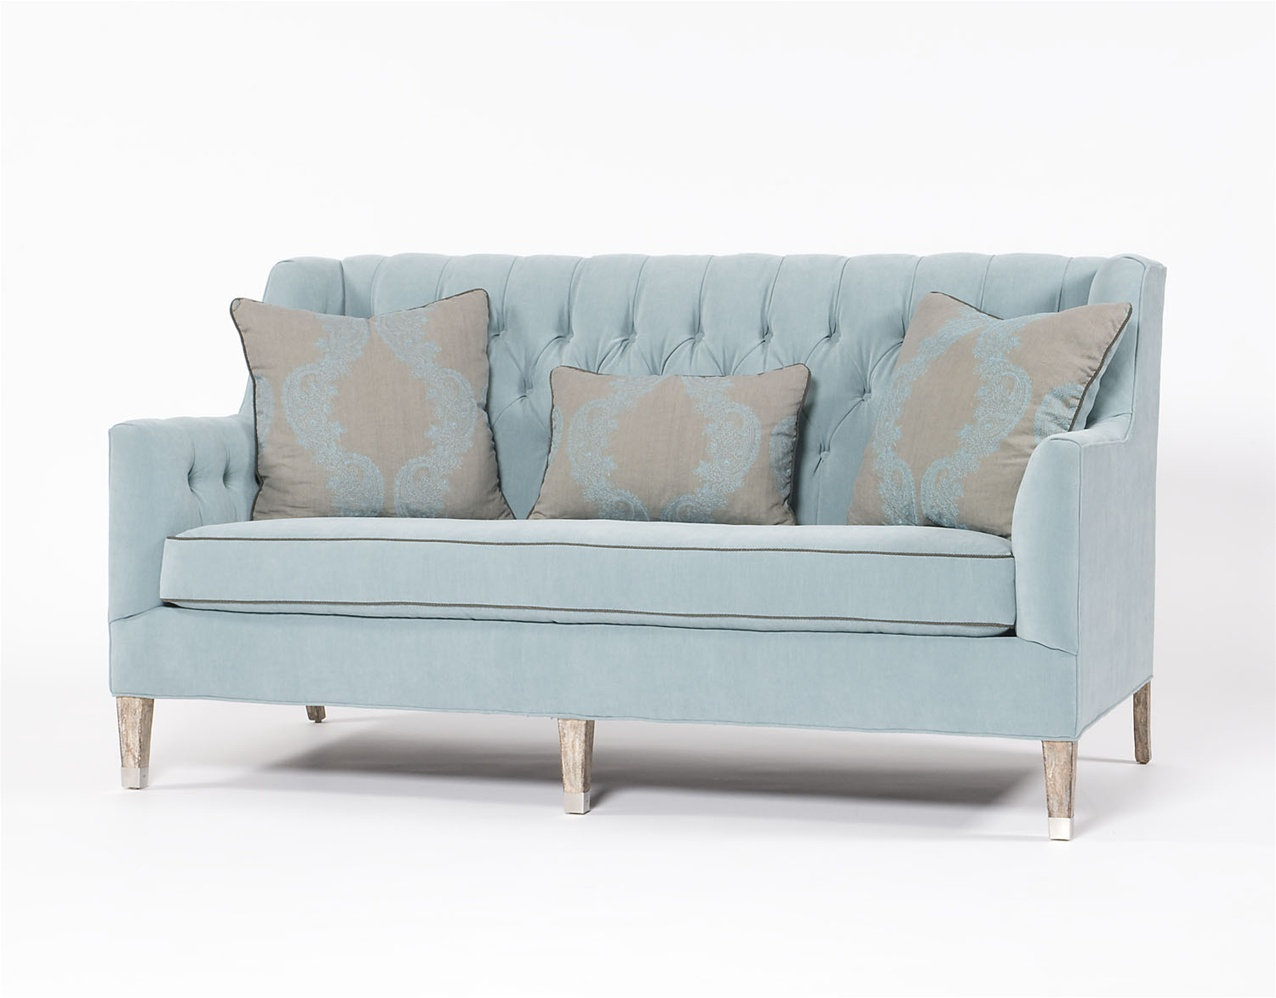 Bench style sofa 19th century swedish gustavian style sofa at 1stdibs thesofa Bench sofa